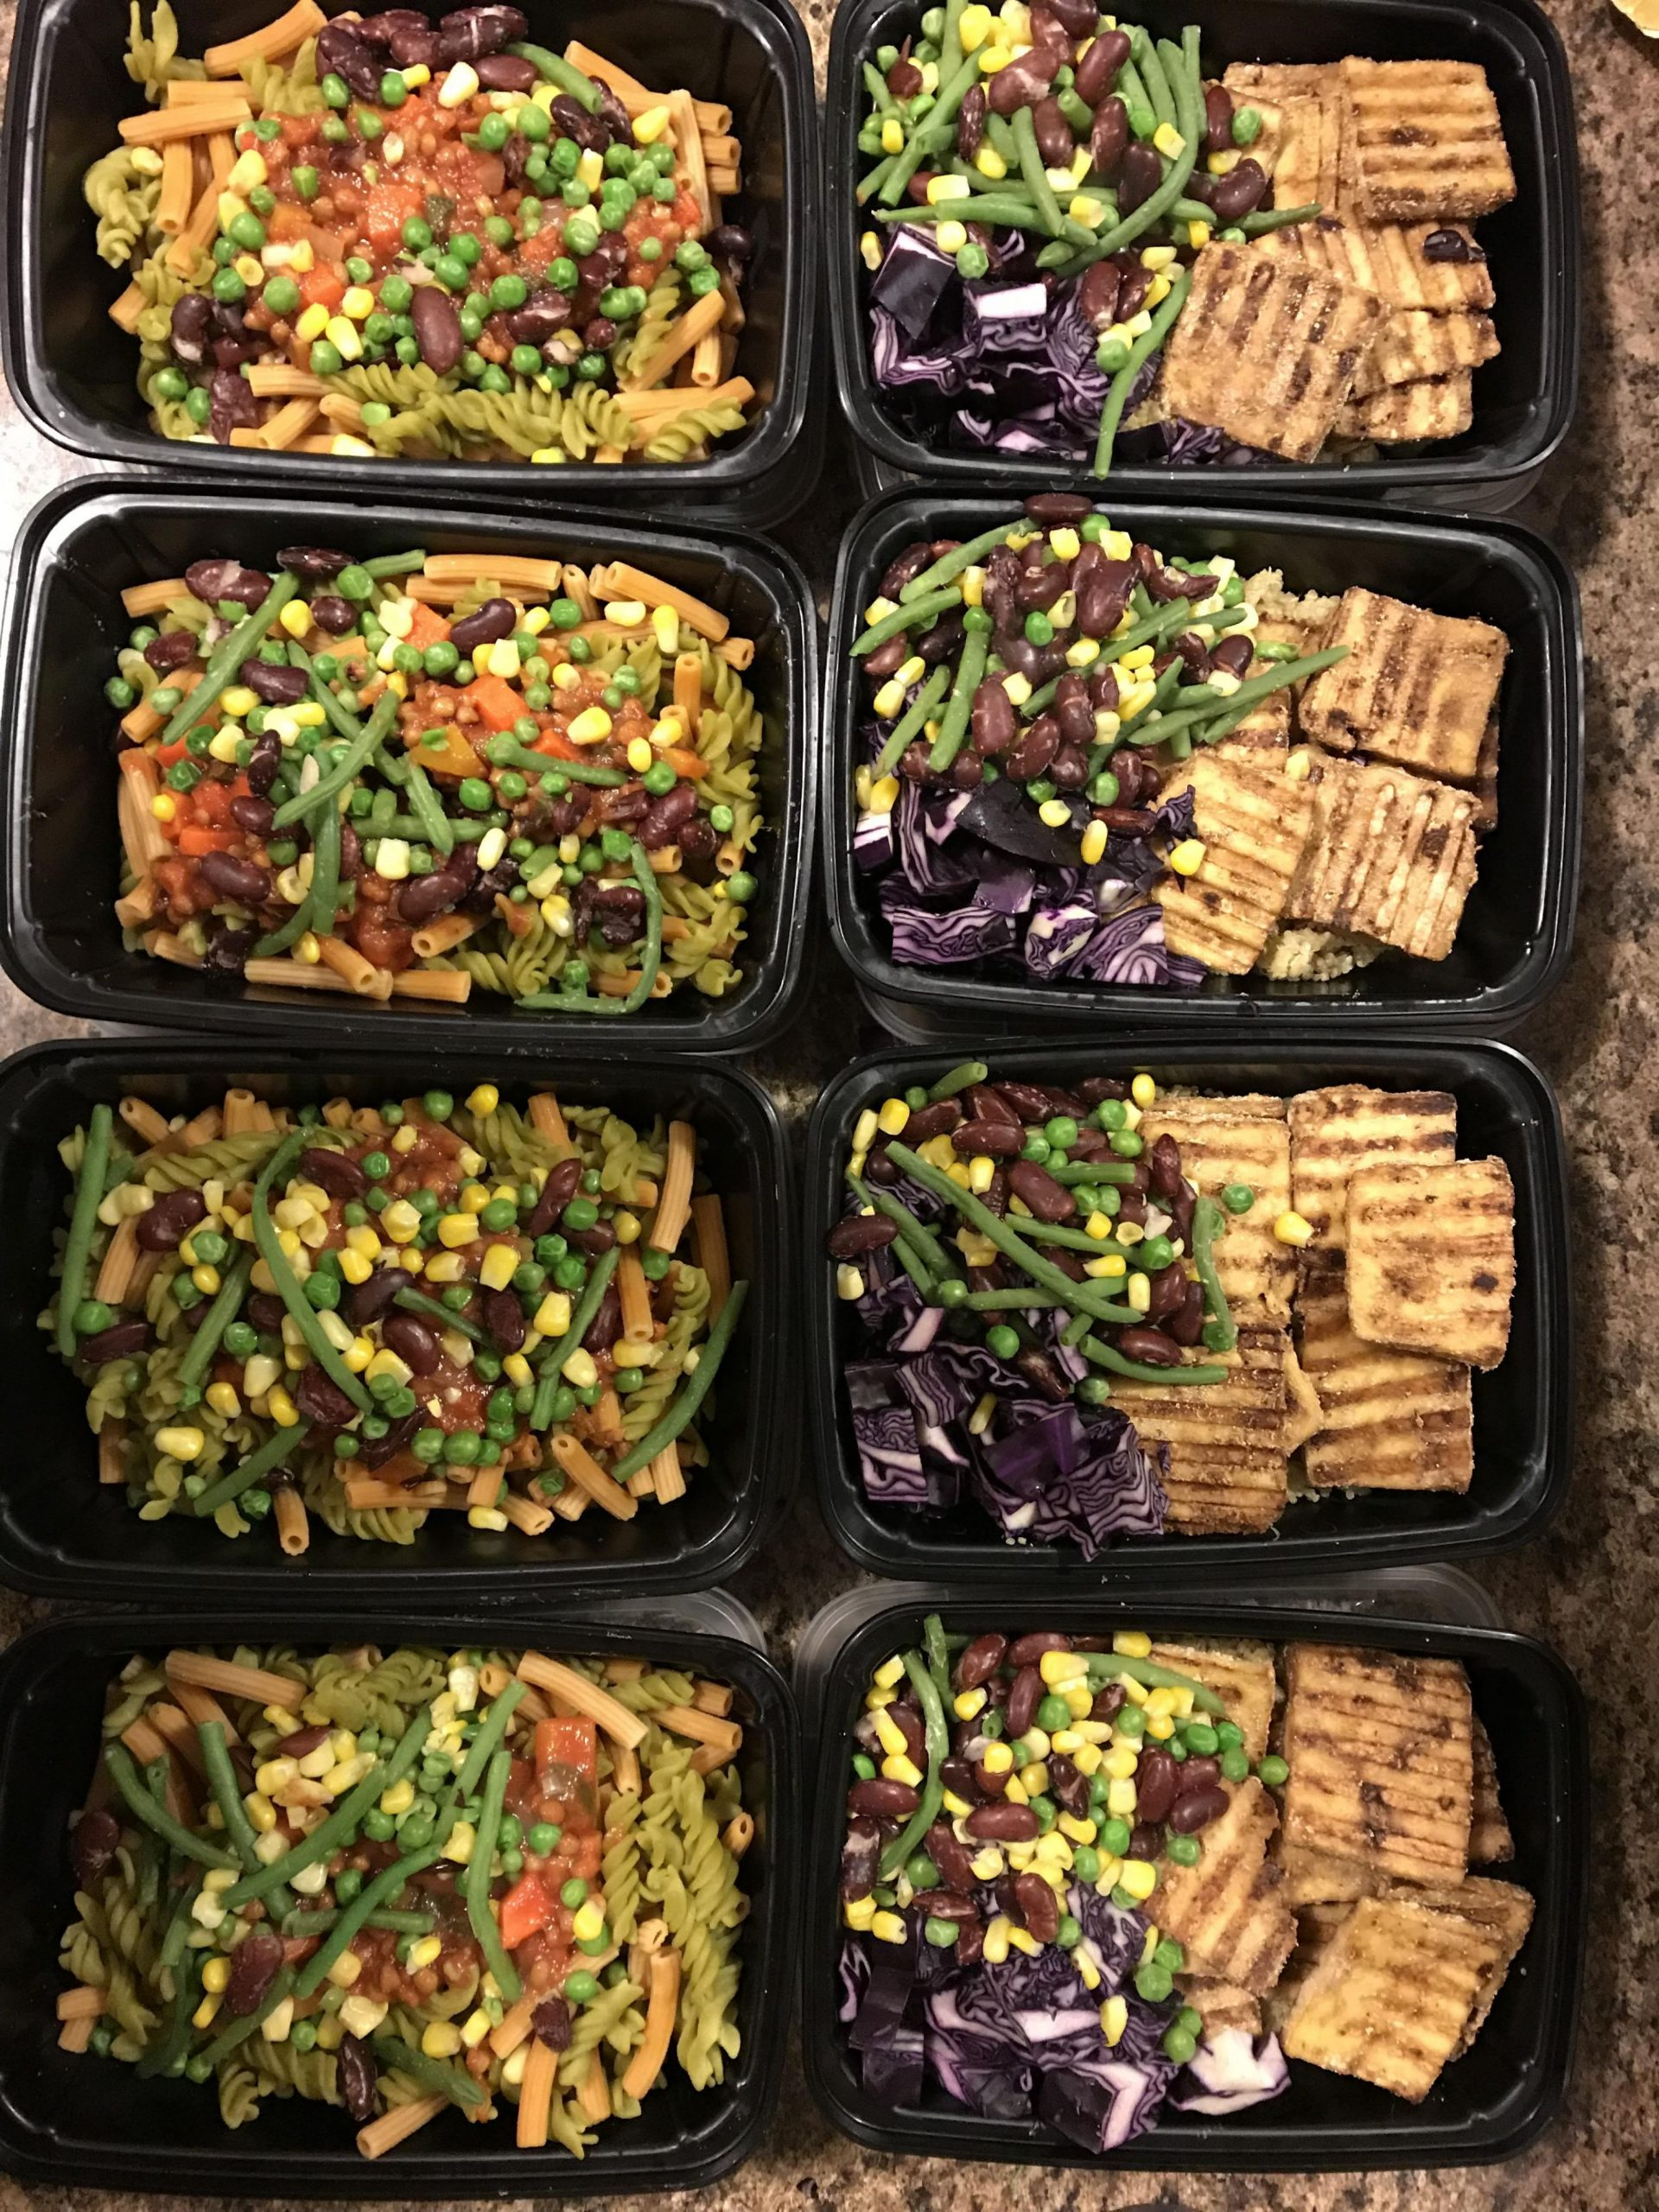 Vegan bodybuilding meal prep : MealPrepSunday - Healthy Recipes Bodybuilding